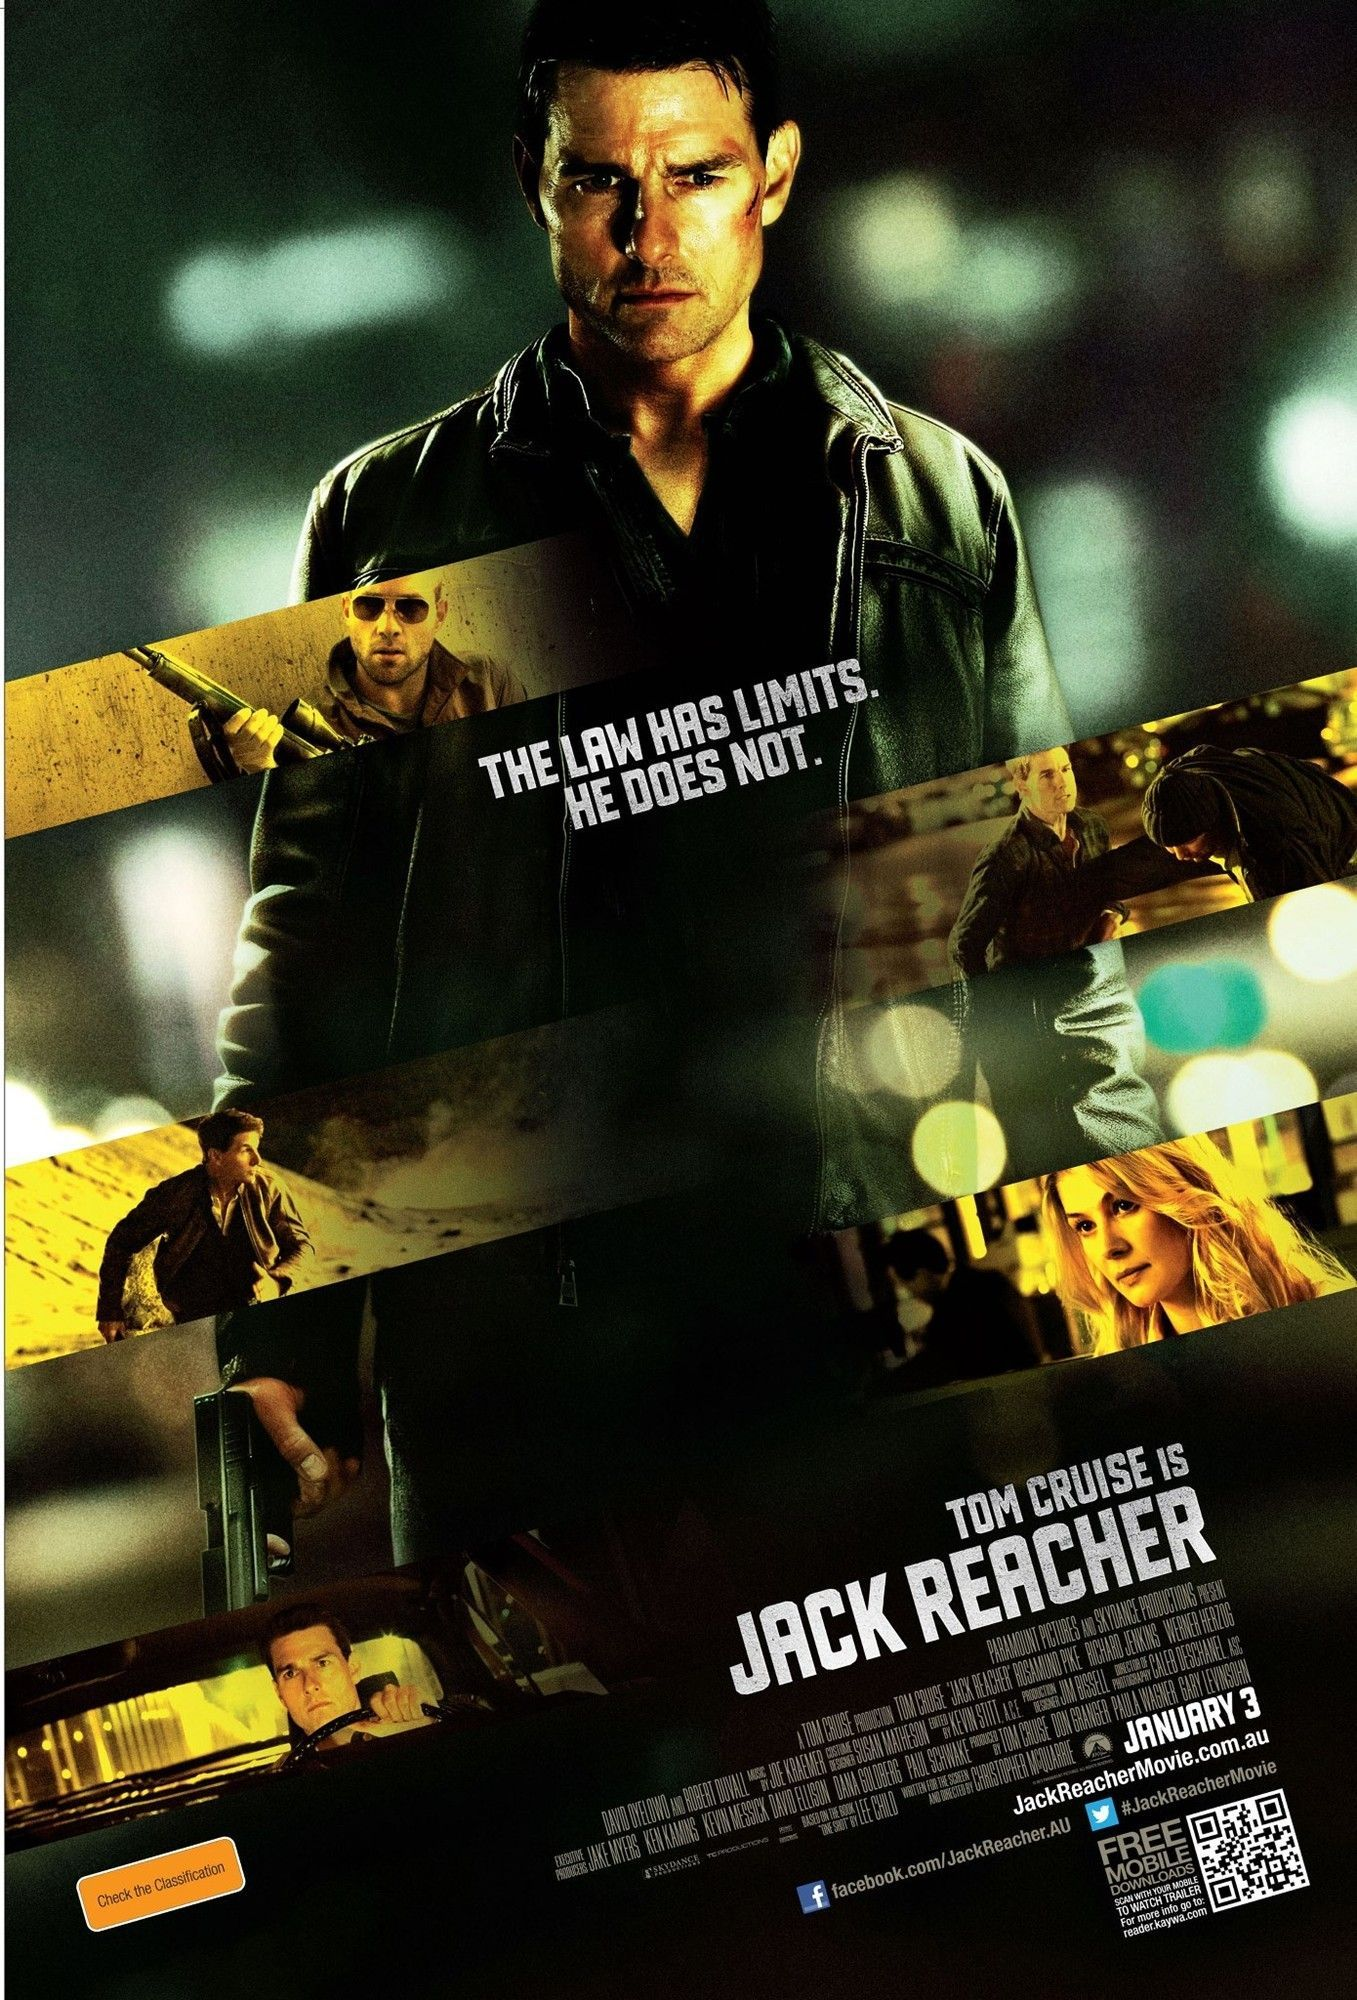 Jack Reacher Picture 11 Jack Reacher Movie Jack Reacher Tom Cruise